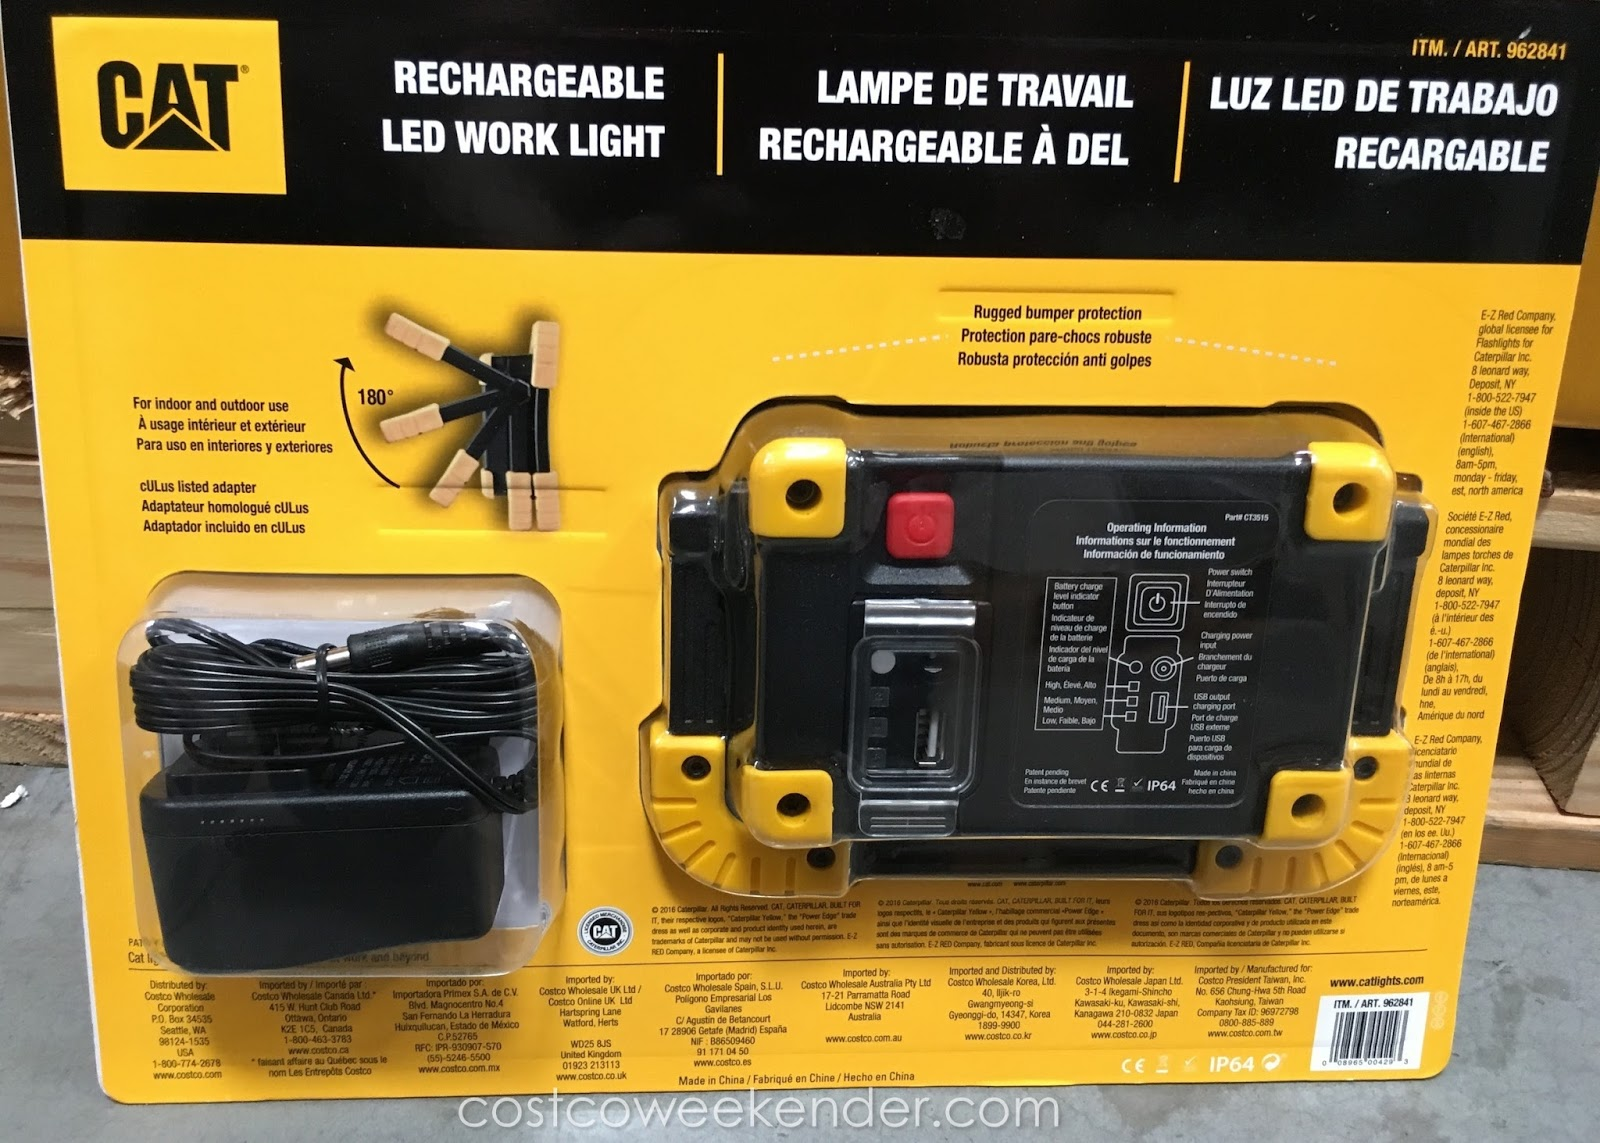 Led Cat Work Lights : Cat rechargeable led work light costco weekender